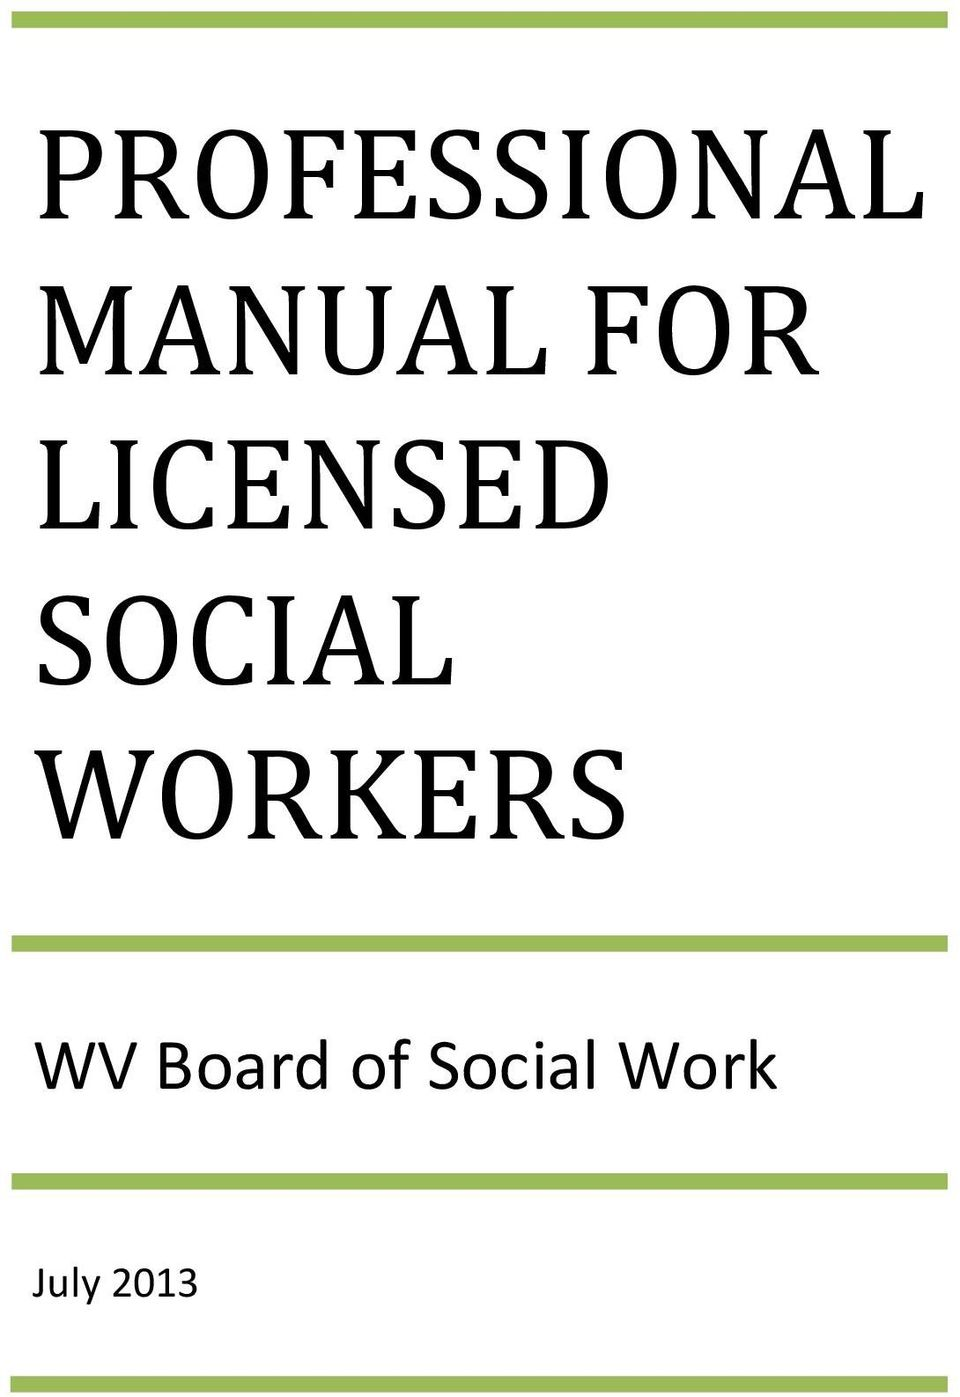 WORKERS WV Board of